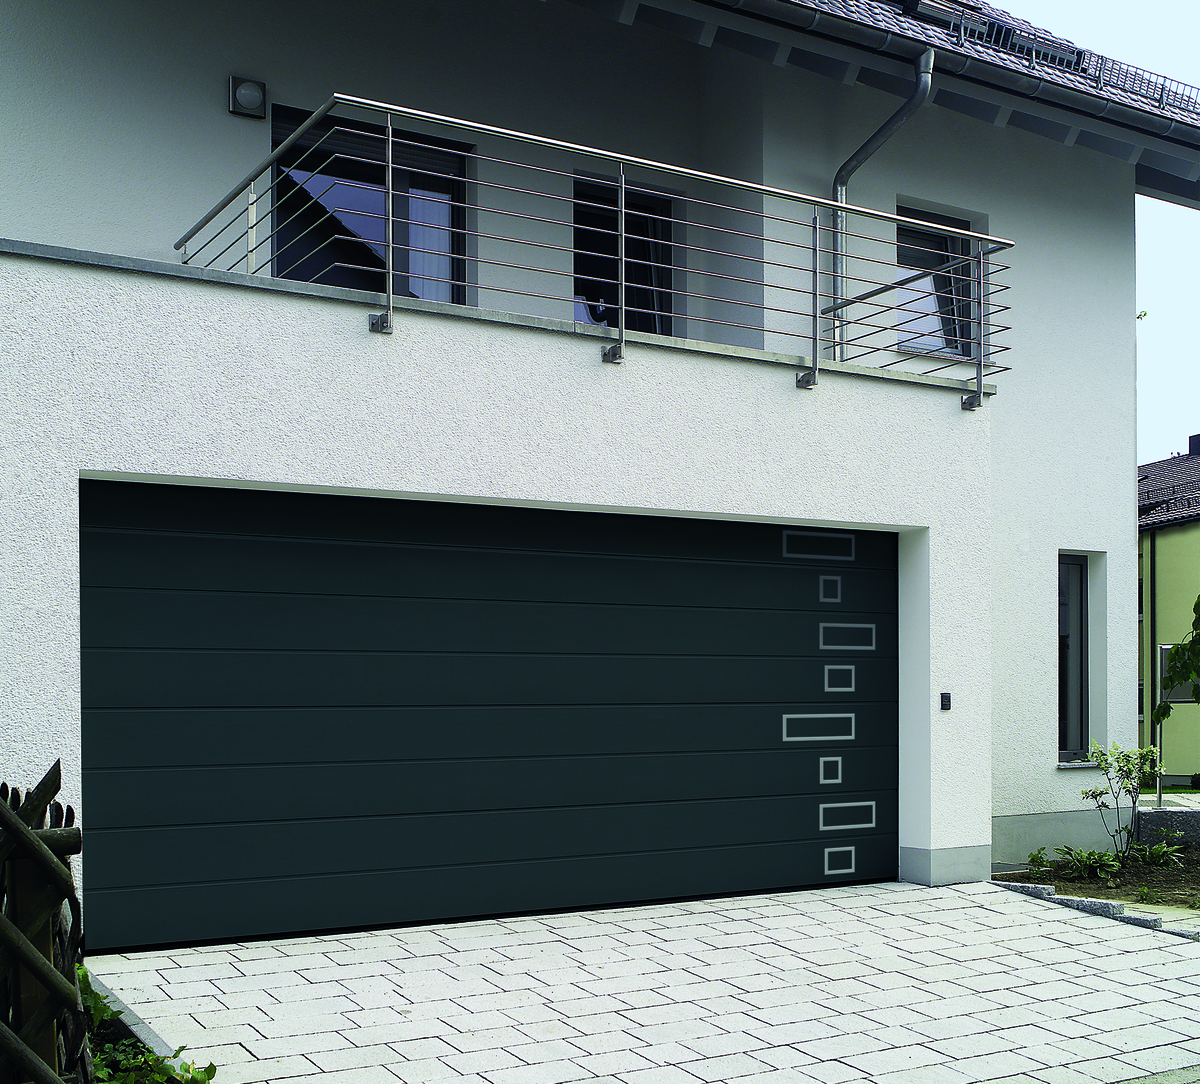 Porte de garage sectionnelle LPU 42 - Image N°2 Porte de garage sectionnelle LPU 42 coloris Gris Anthracite RAL 7016 rainures L surface SANDGRAIN